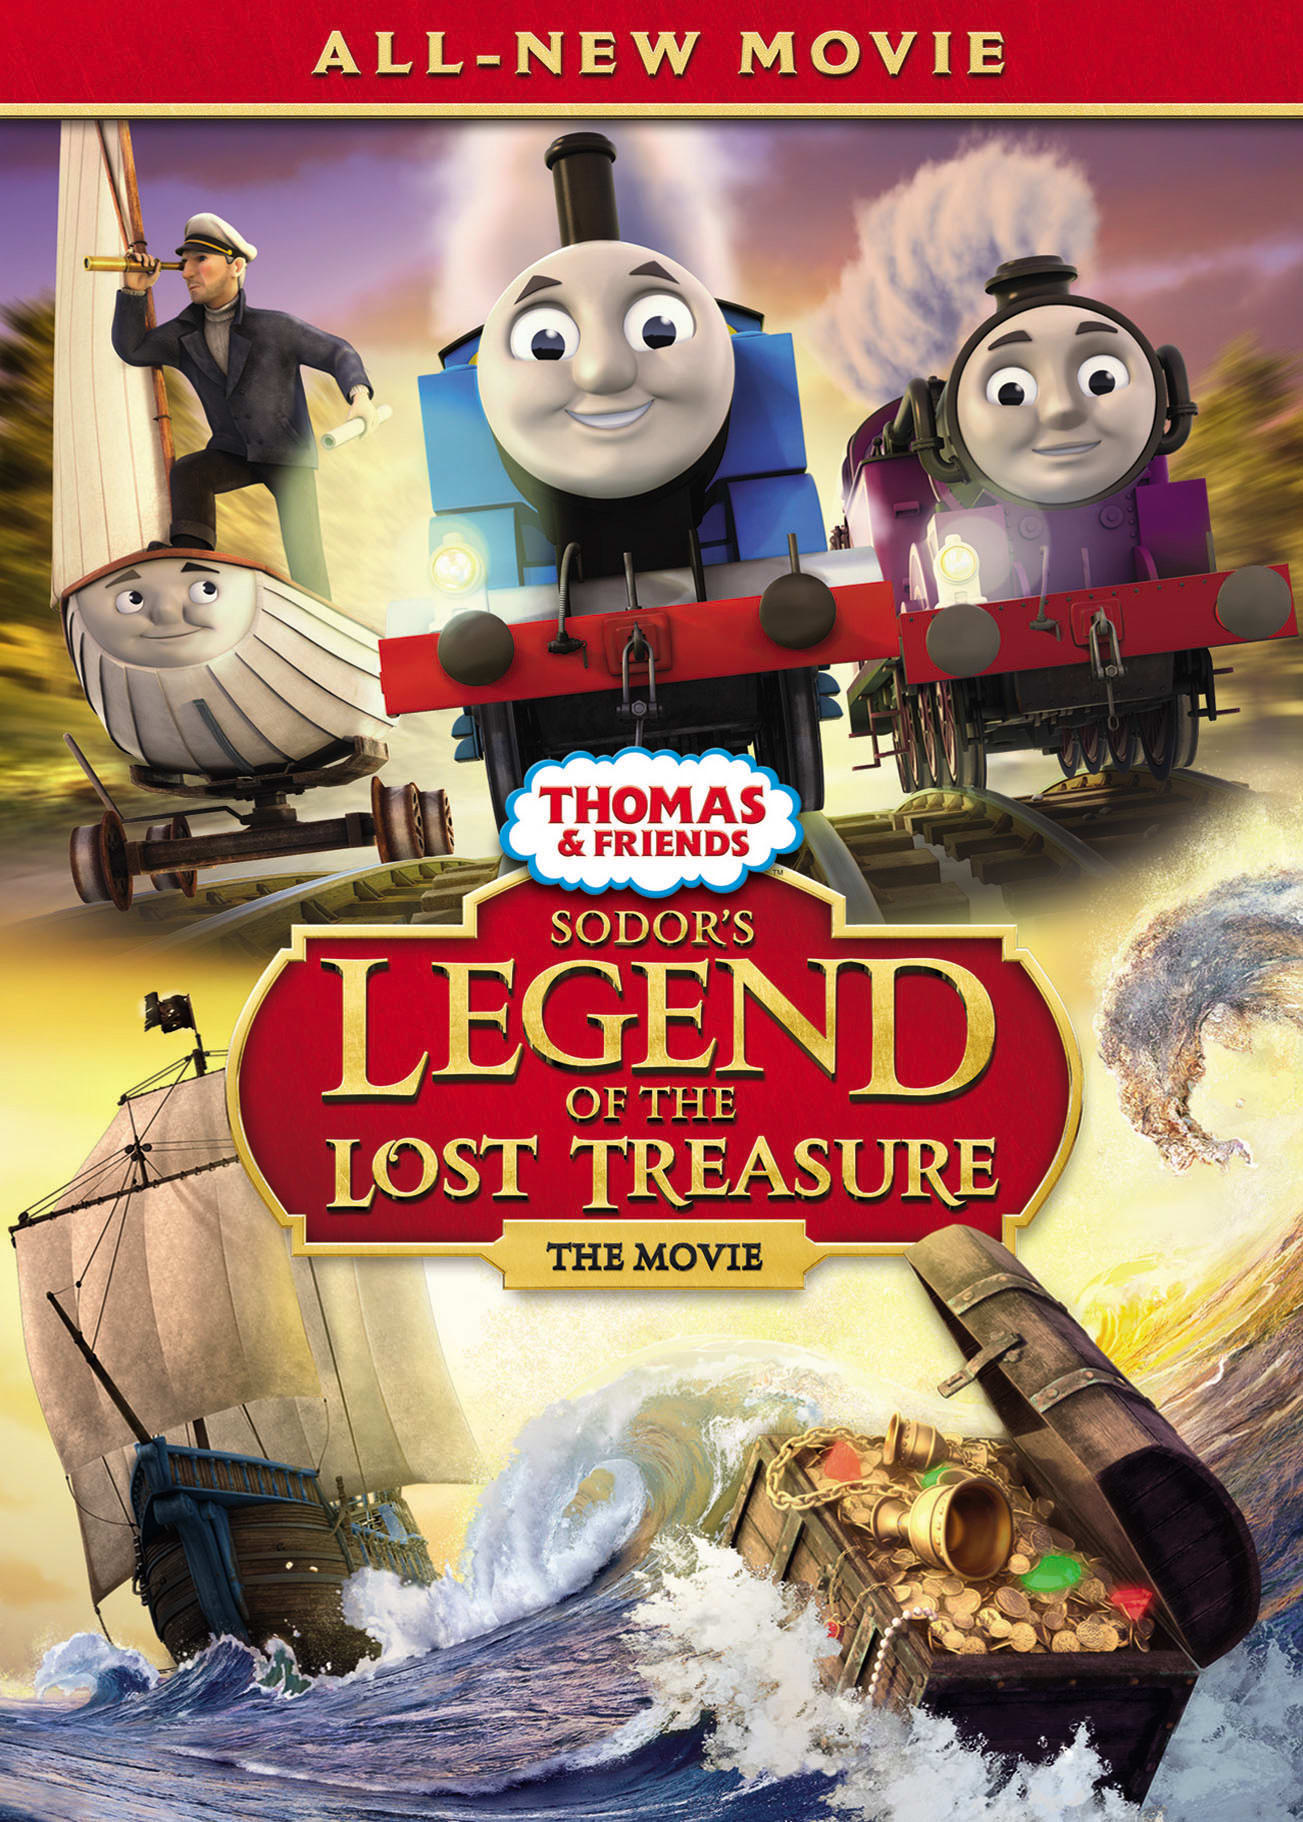 Thomas & Friends: Sodor's Legend of the Lost Treasure - The Movie [DVD]